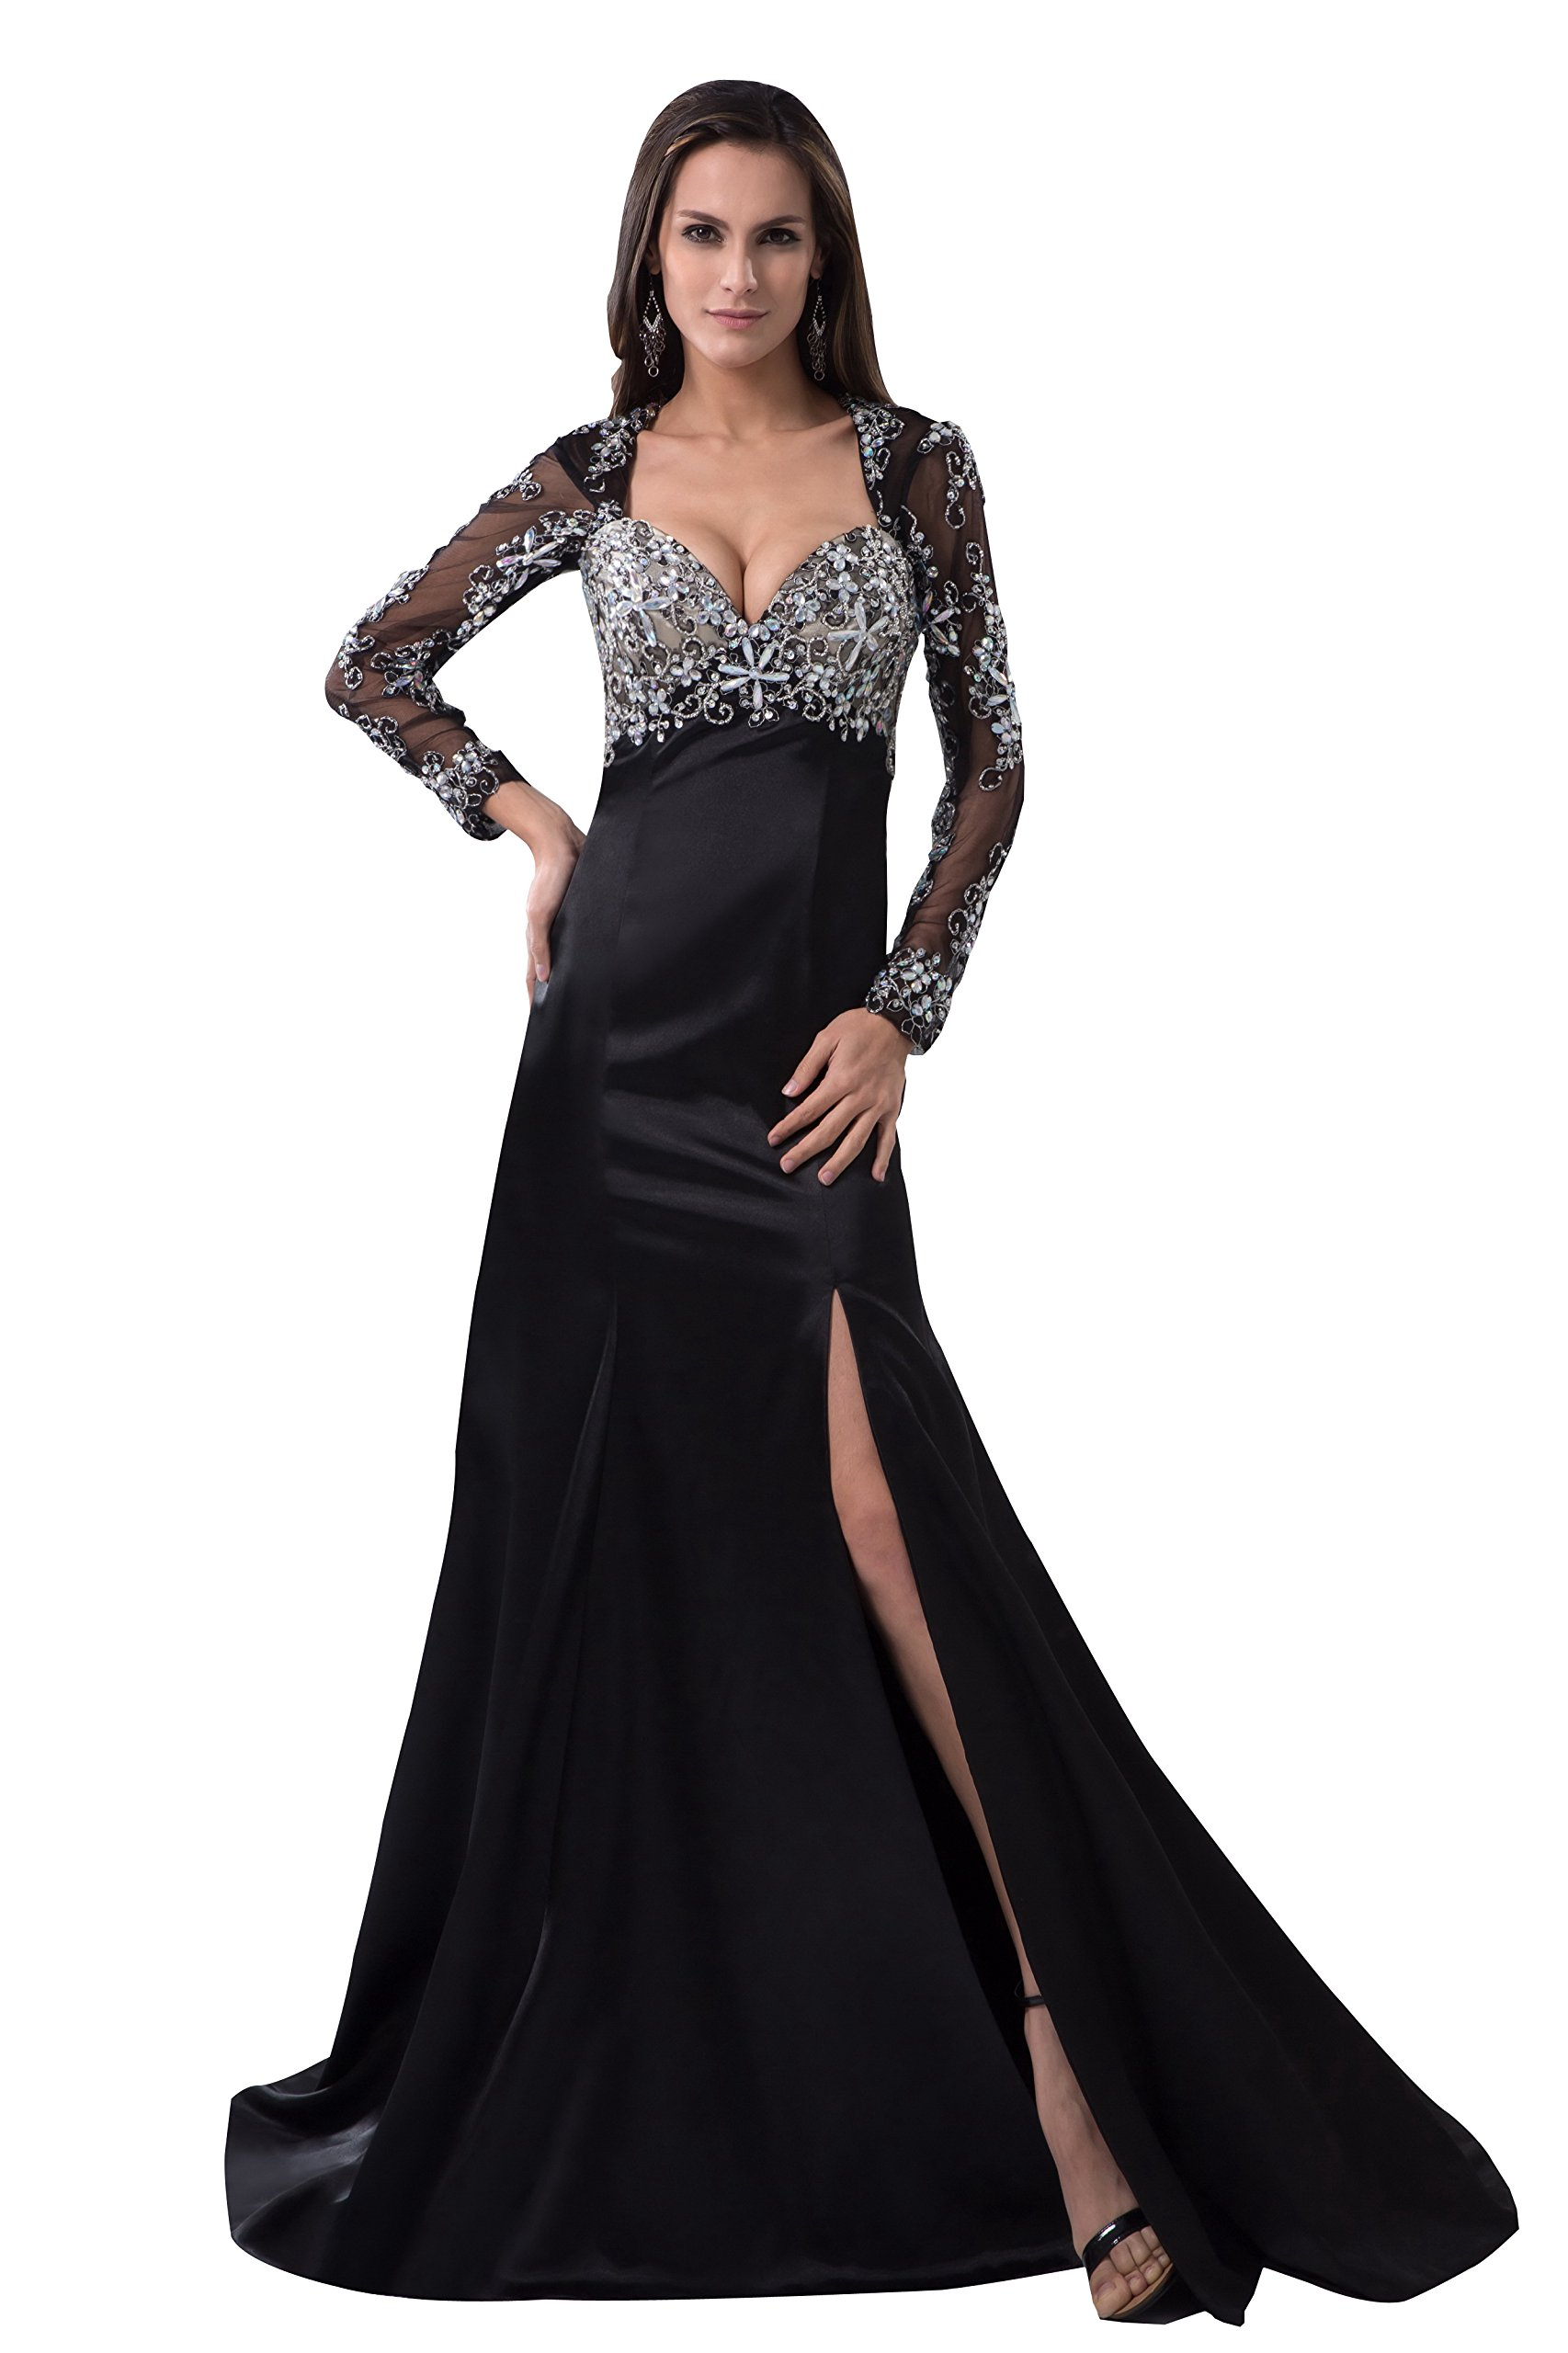 Vogue007 Womens Sweetheart Long Sleeve Backless Formal Dress with Sewing Beads, Black, 22W by Unknown